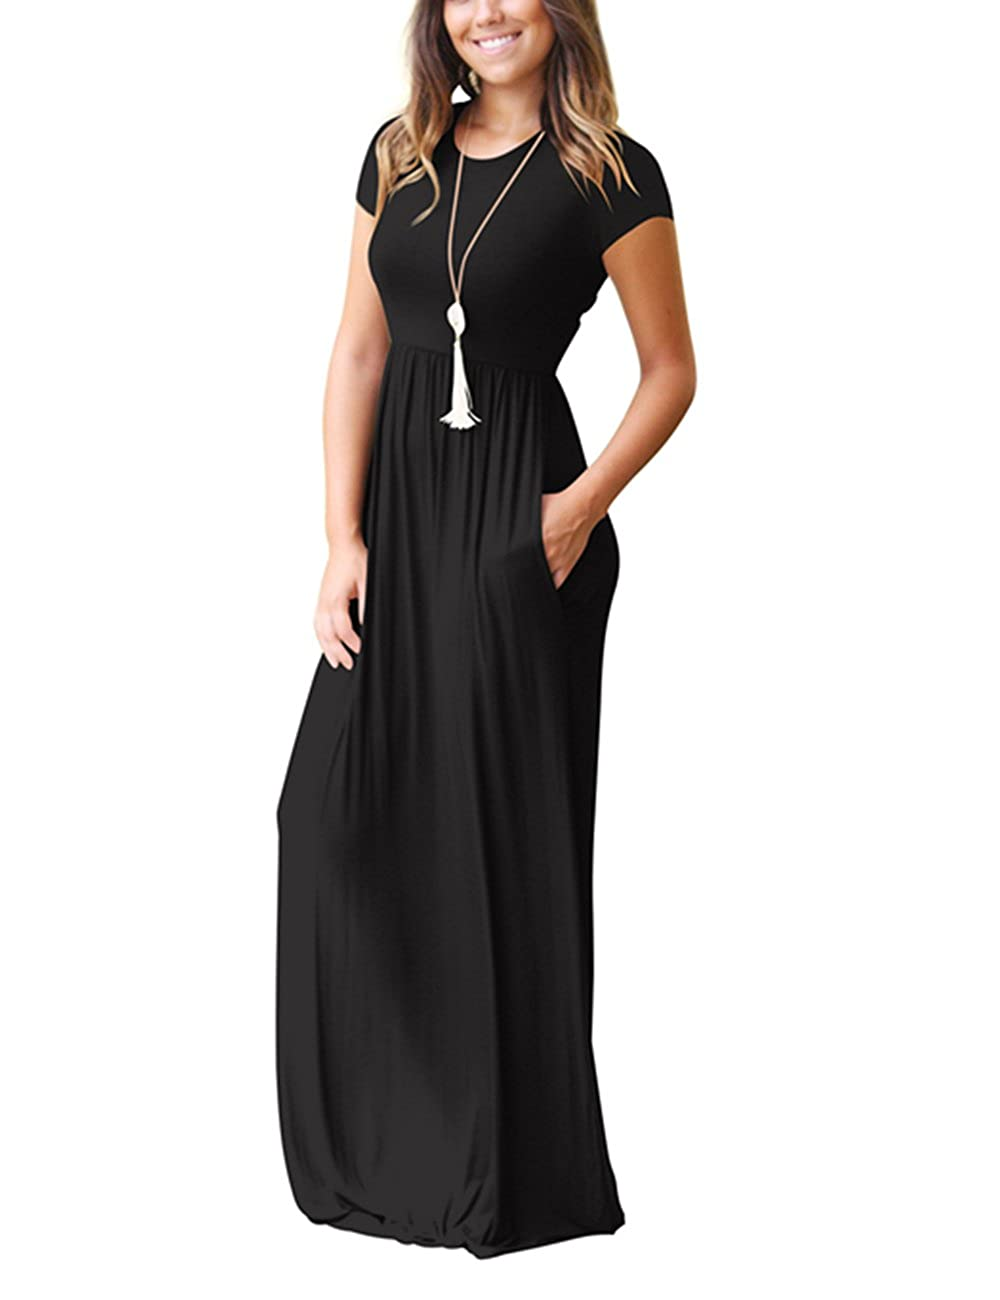 1186b5c5738 ORQ Women s Plus Size Short Sleeve Loose Plain Casual Long Maxi Dress with  Pockets at Amazon Women s Clothing store